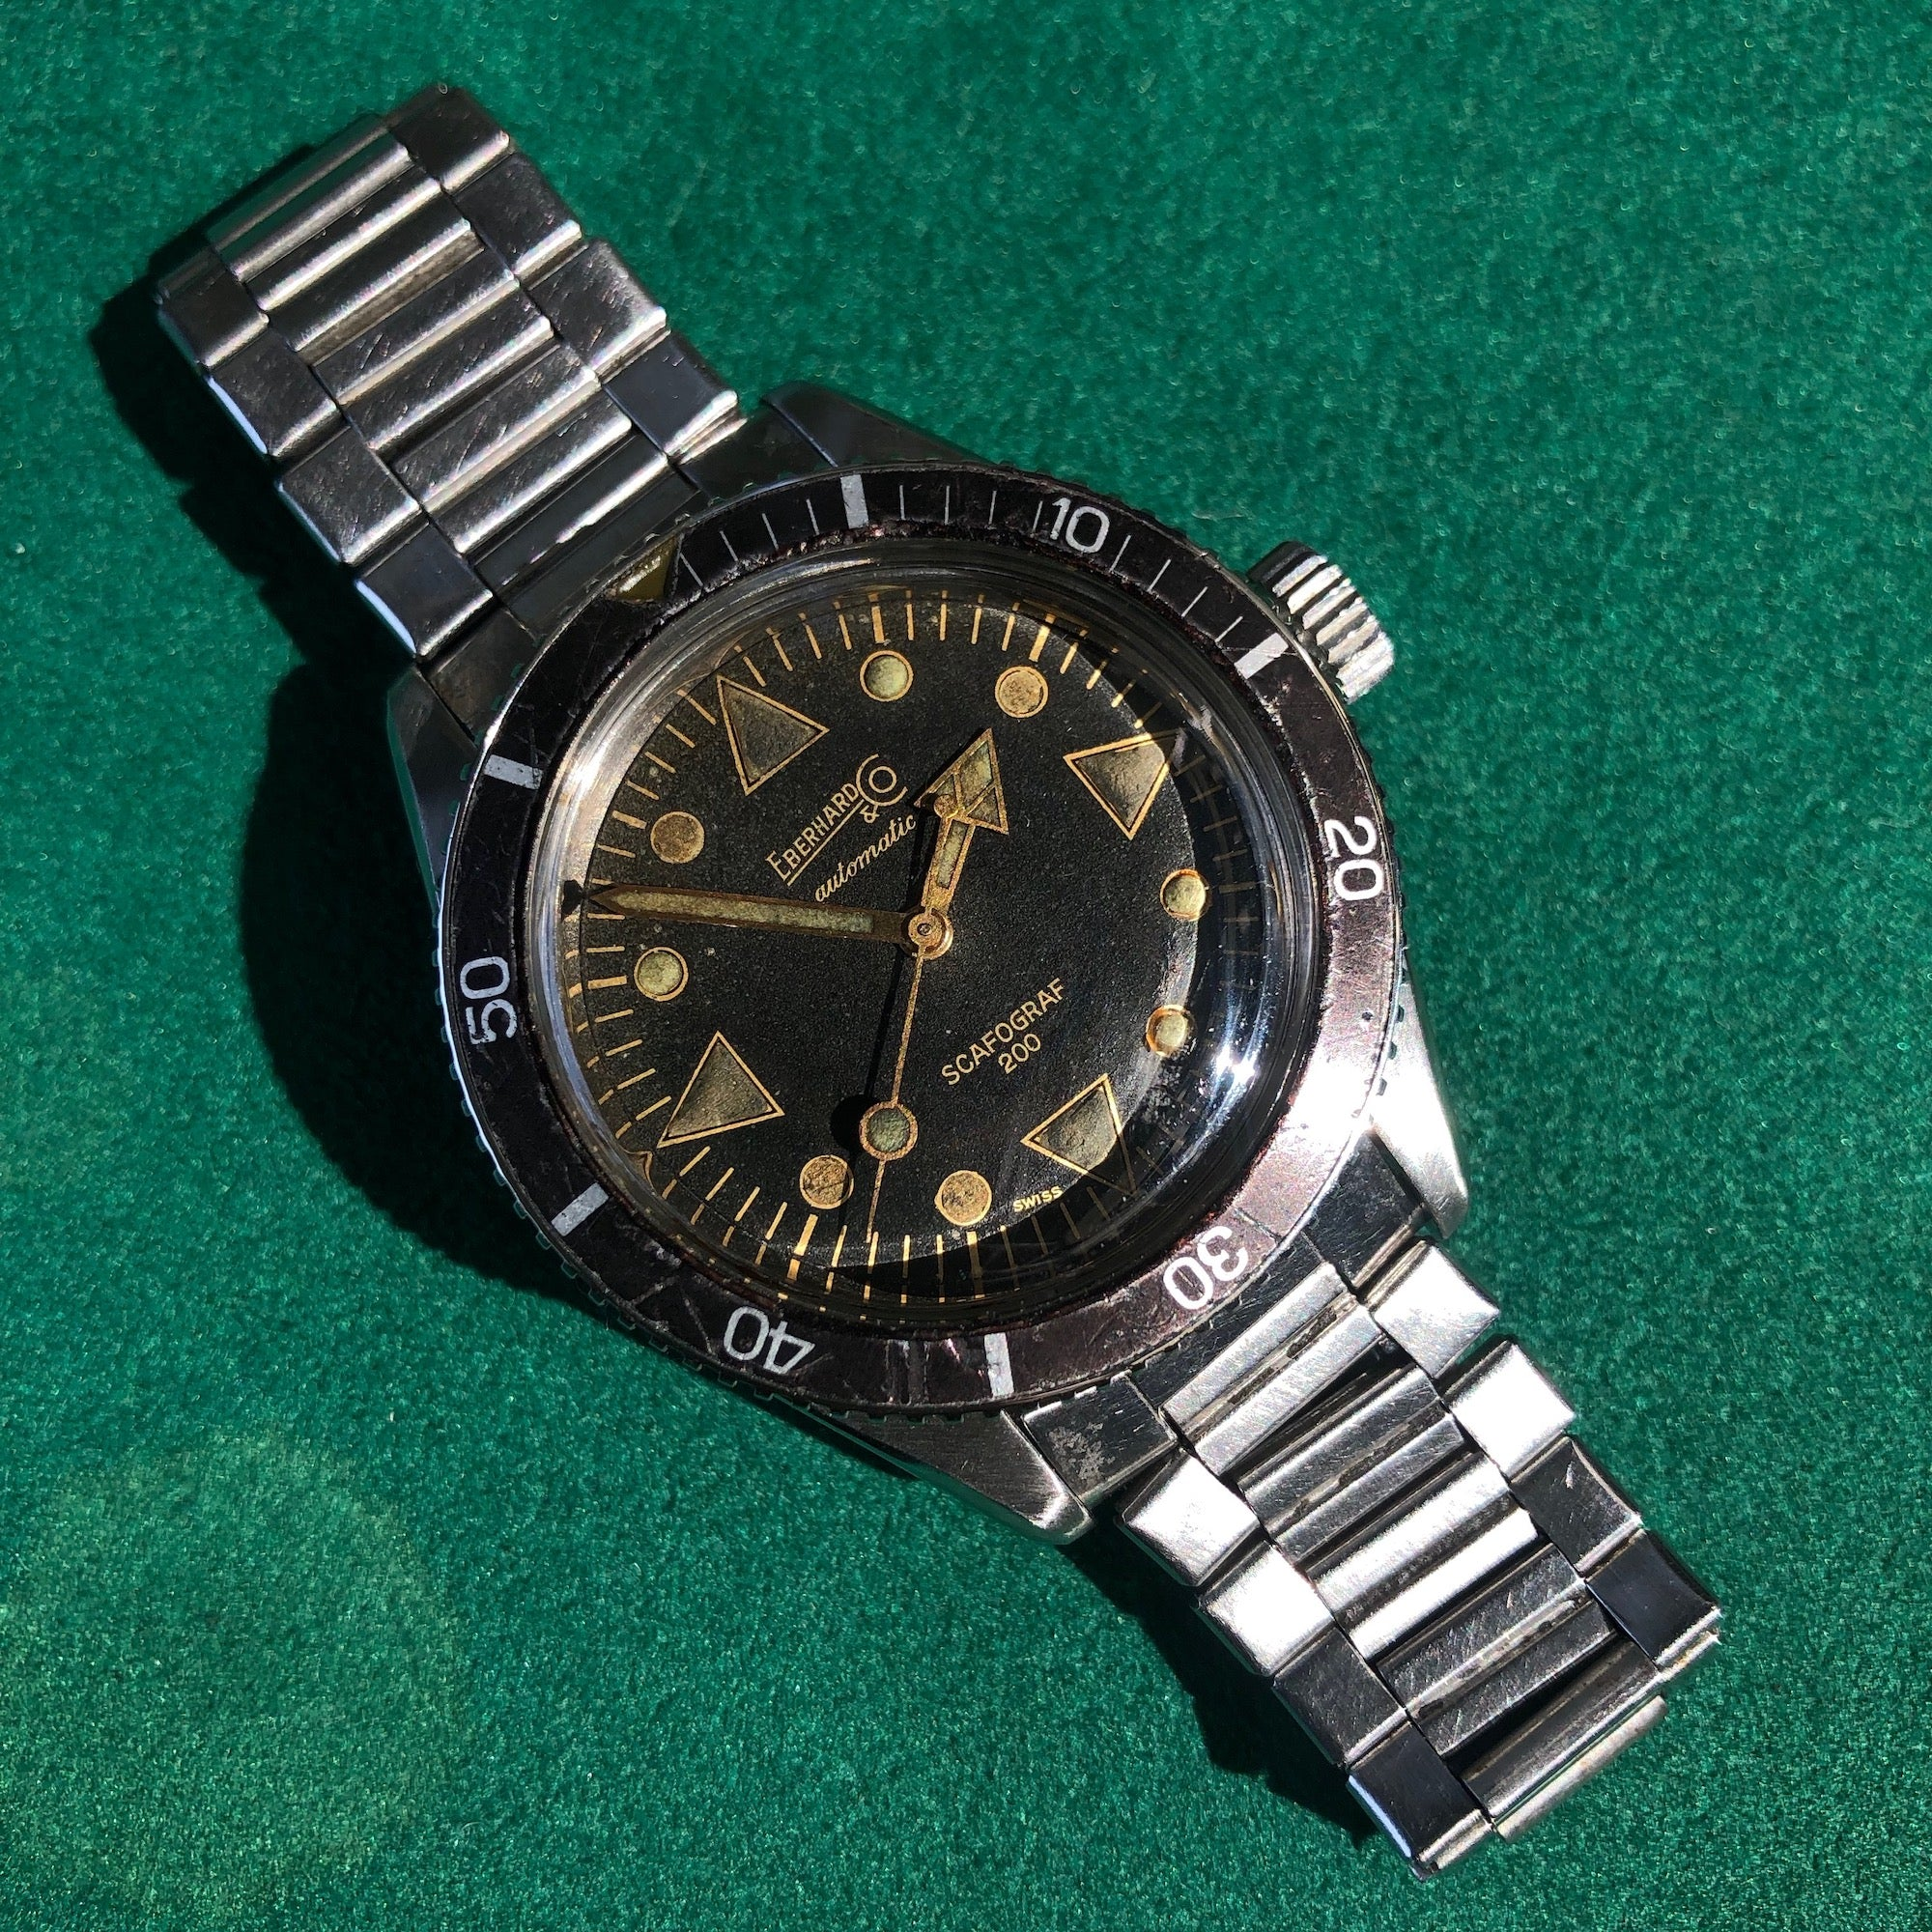 Vintage Eberhard & Co. Scafograf 200 Stainless Steel 11536 Automatic Divers Wristwatch - Hashtag Watch Company